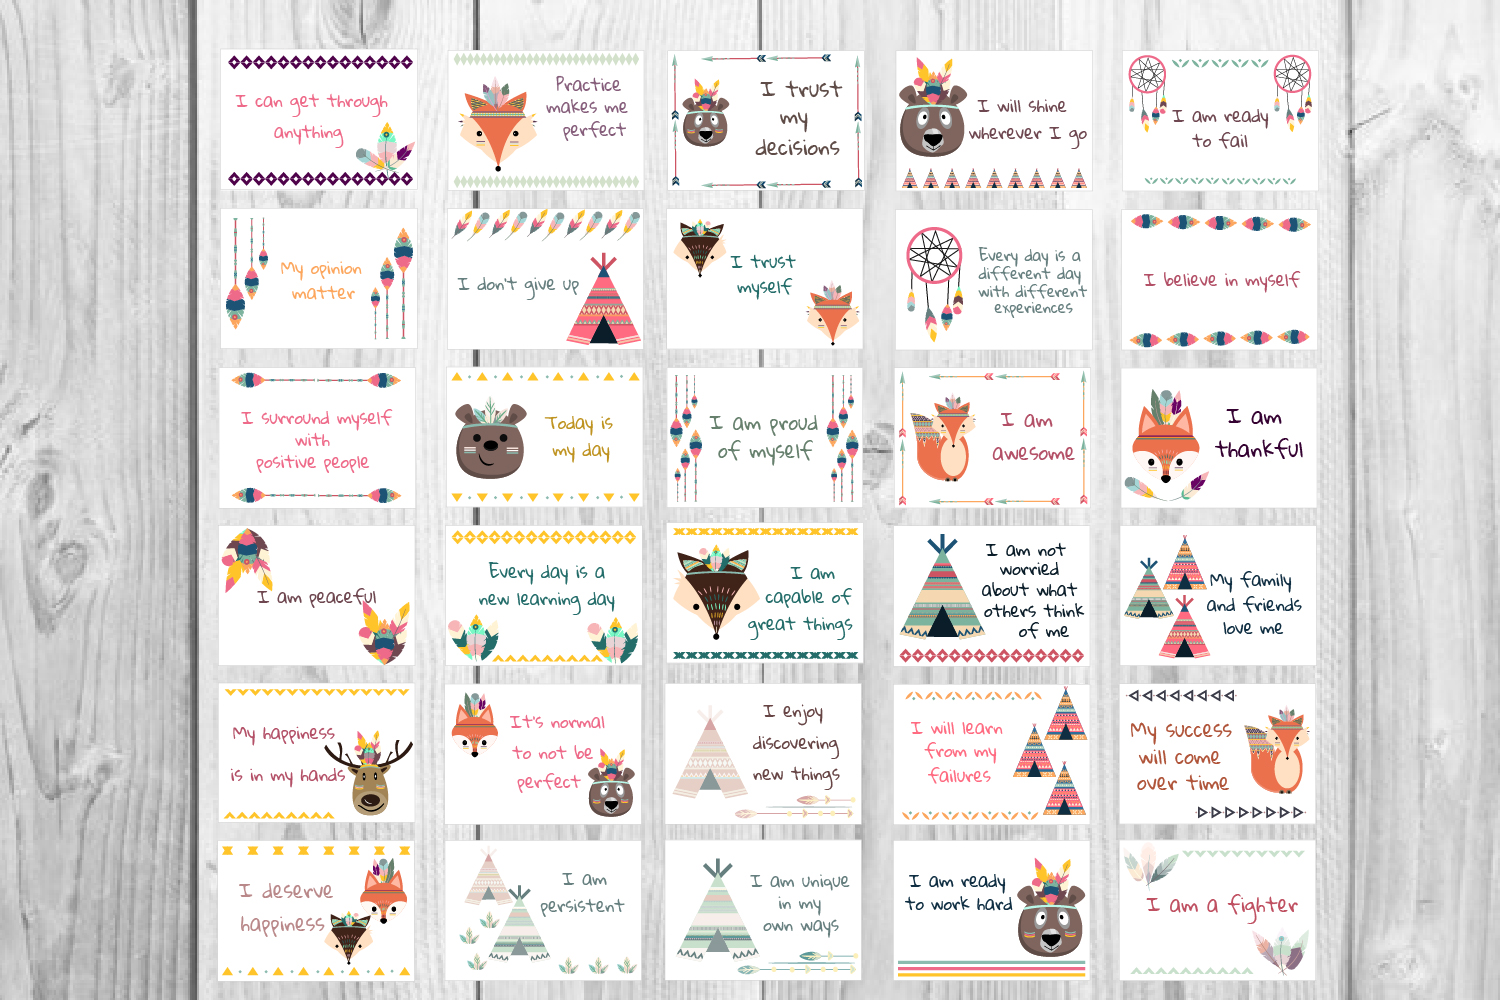 Download Free Motivational Cards Affirmation Cards Graphic By Igraphic Studio Creative Fabrica for Cricut Explore, Silhouette and other cutting machines.